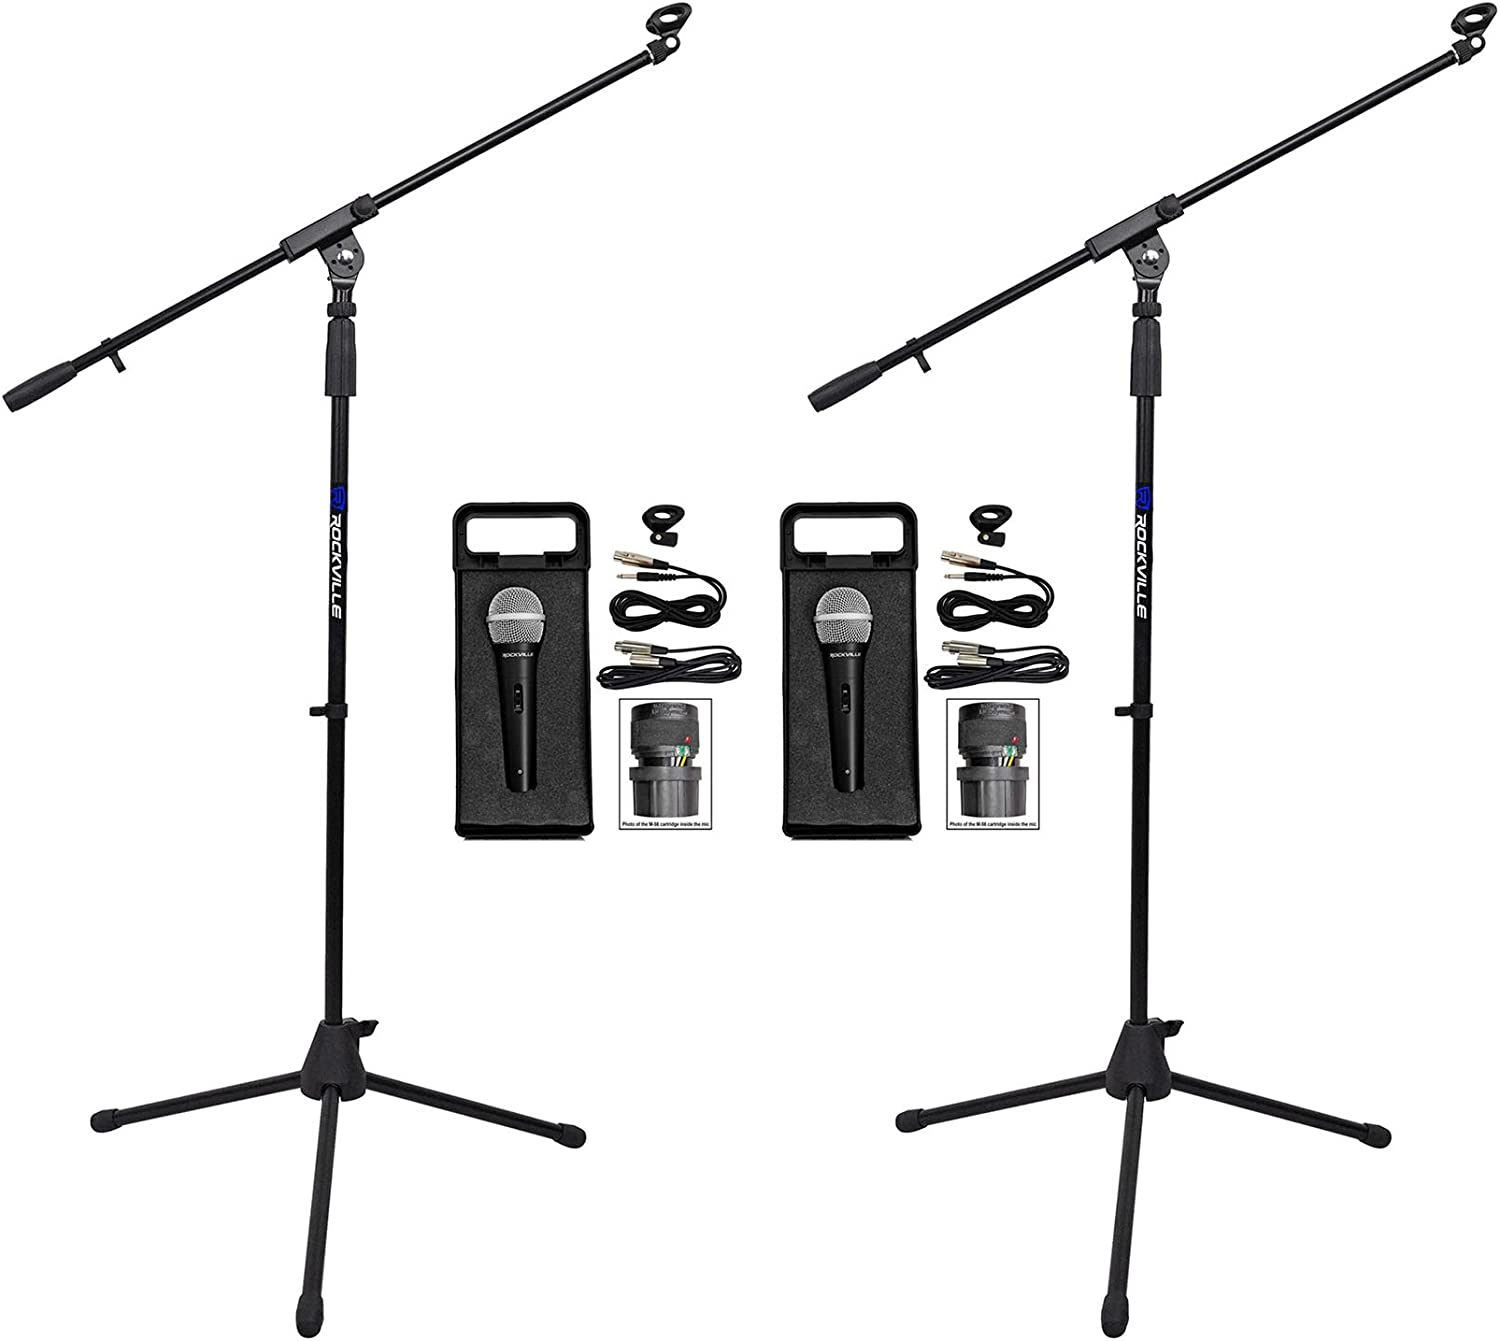 2) Rockville RMC-XLR High-End Metal Handheld Wired Microphones +Tripod Stand